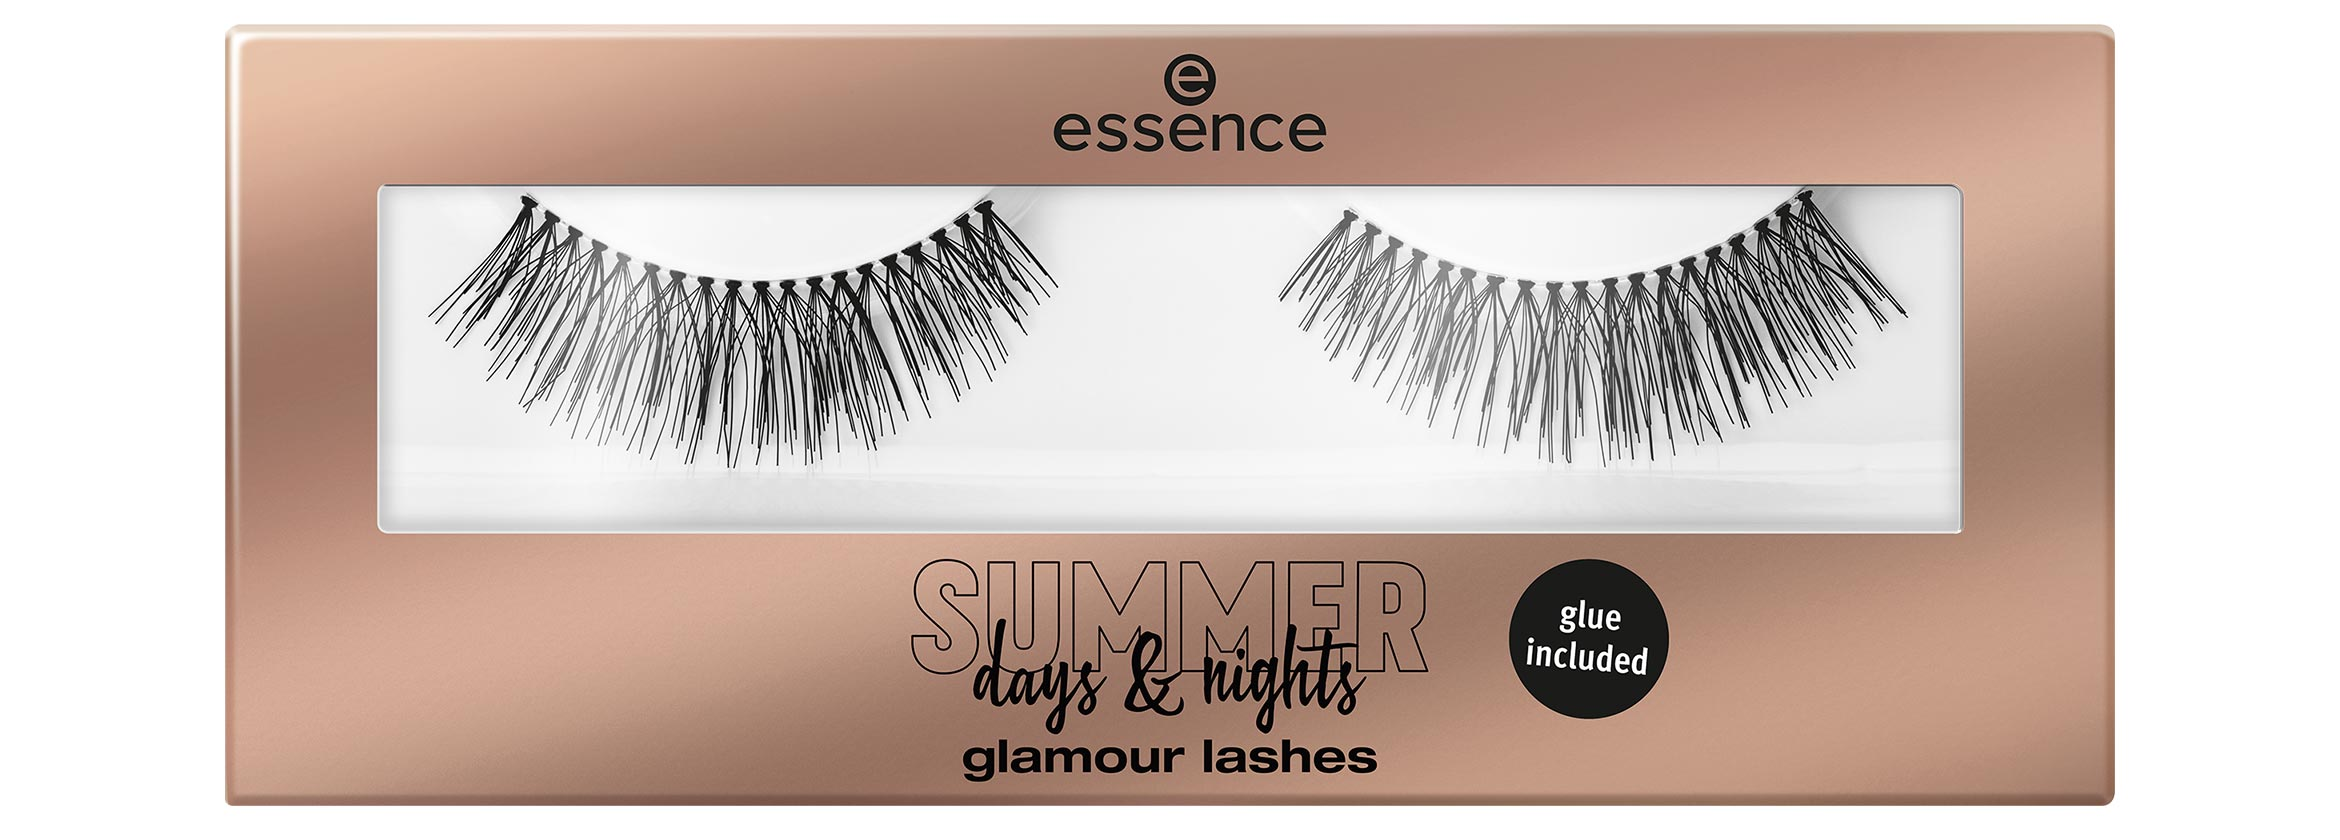 essence-summer-days-and-nights-glamour-lashes